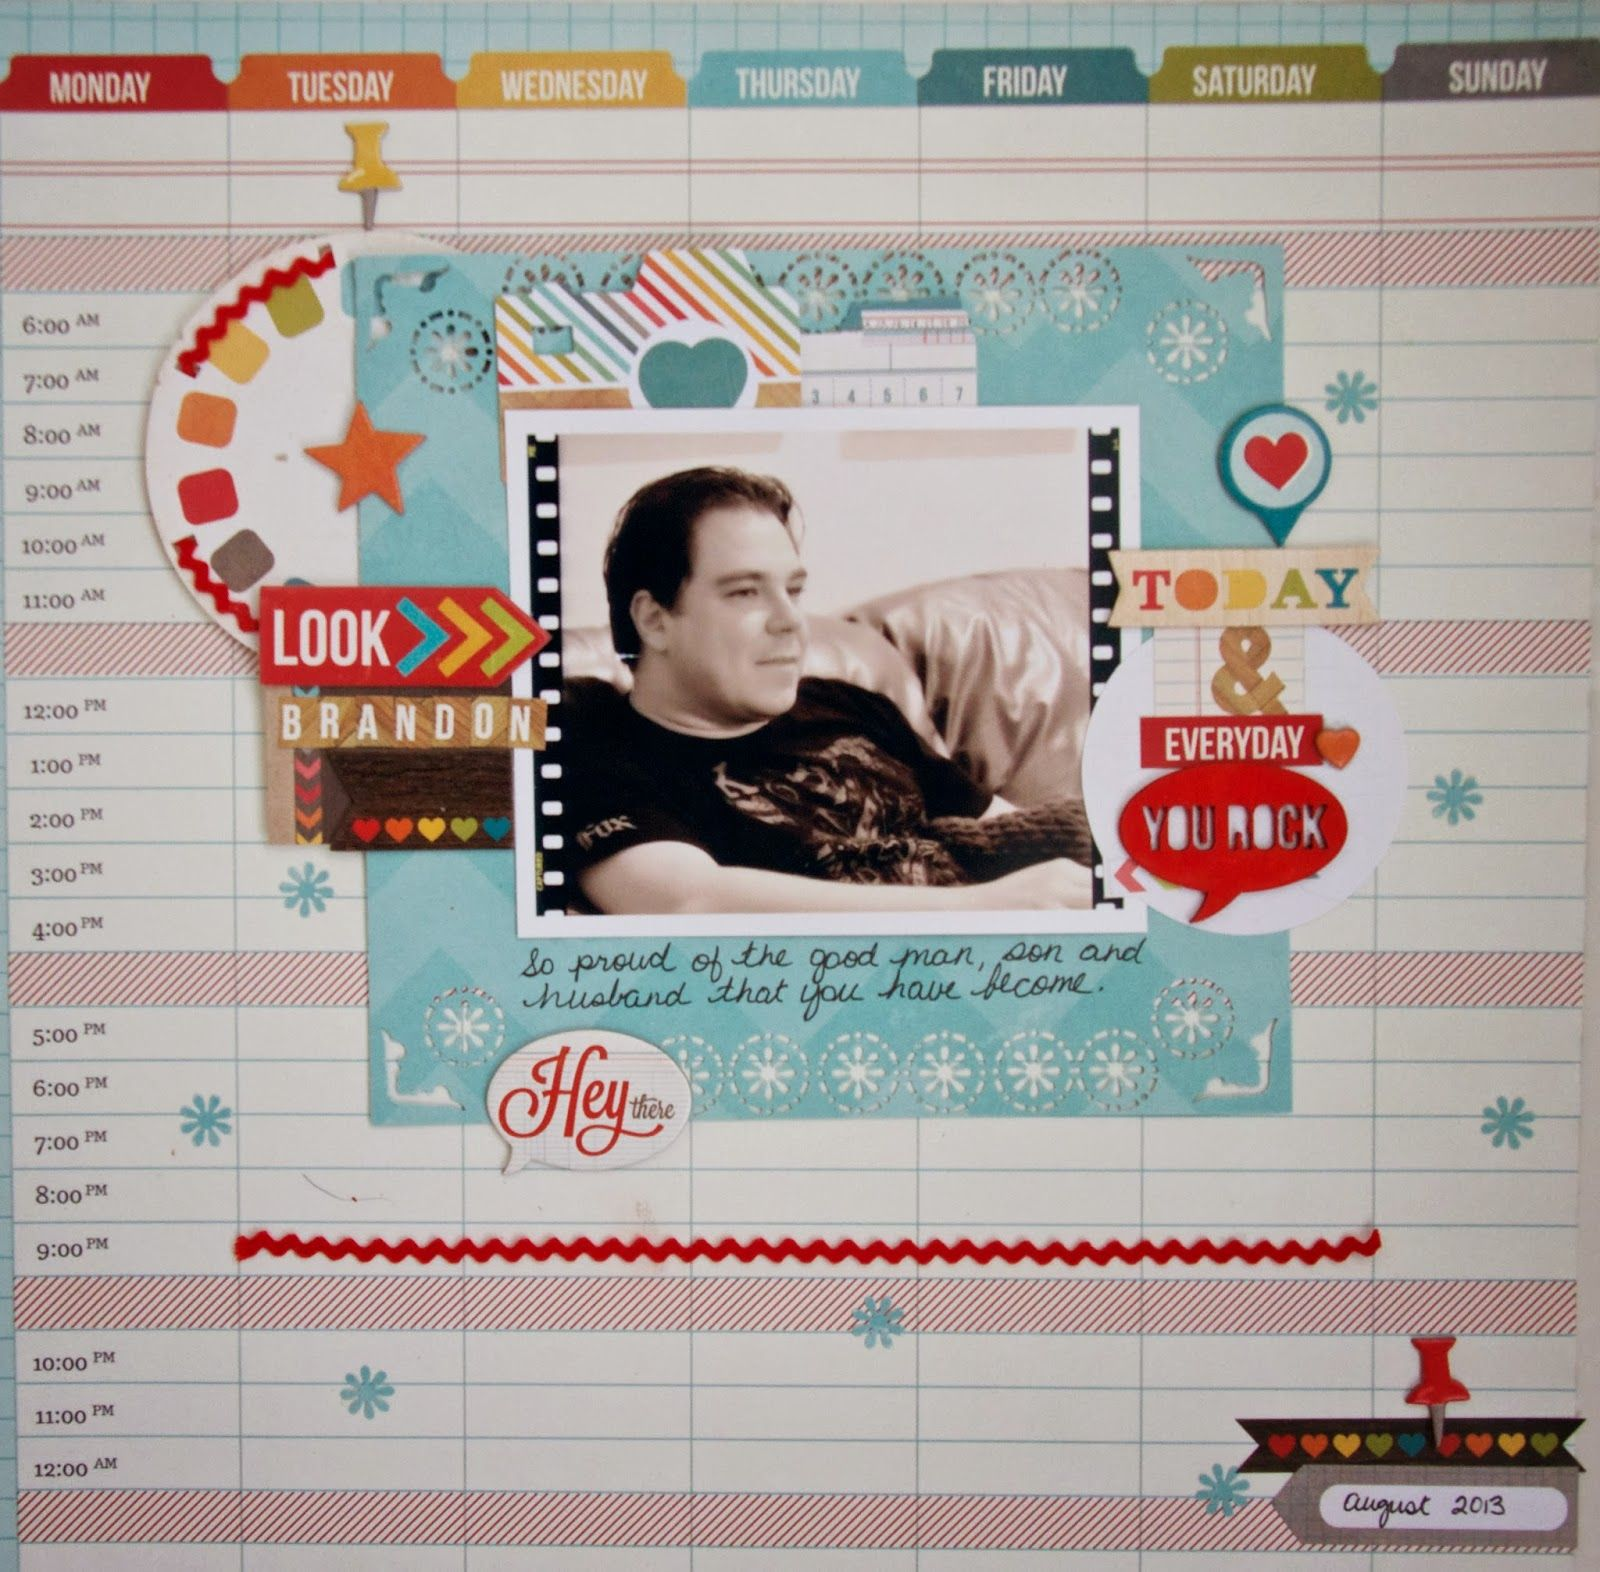 Journey scrapbook ideas - Love The Journey Today And Everyday You Rock Layout